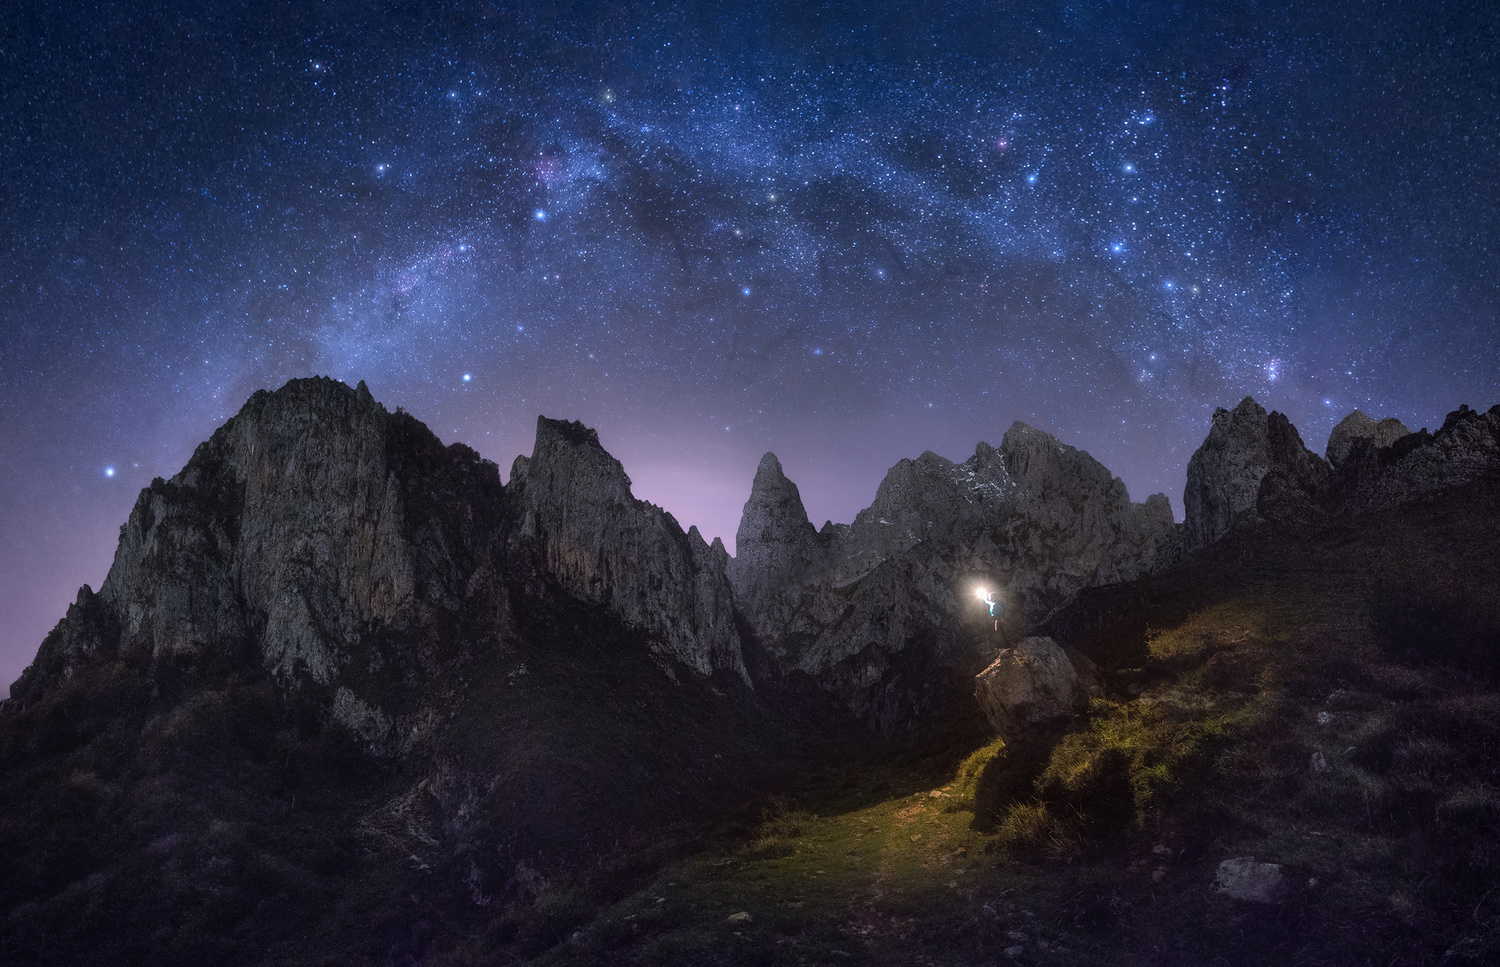 Night is the best time to believe in light by Rubén Vela Martín